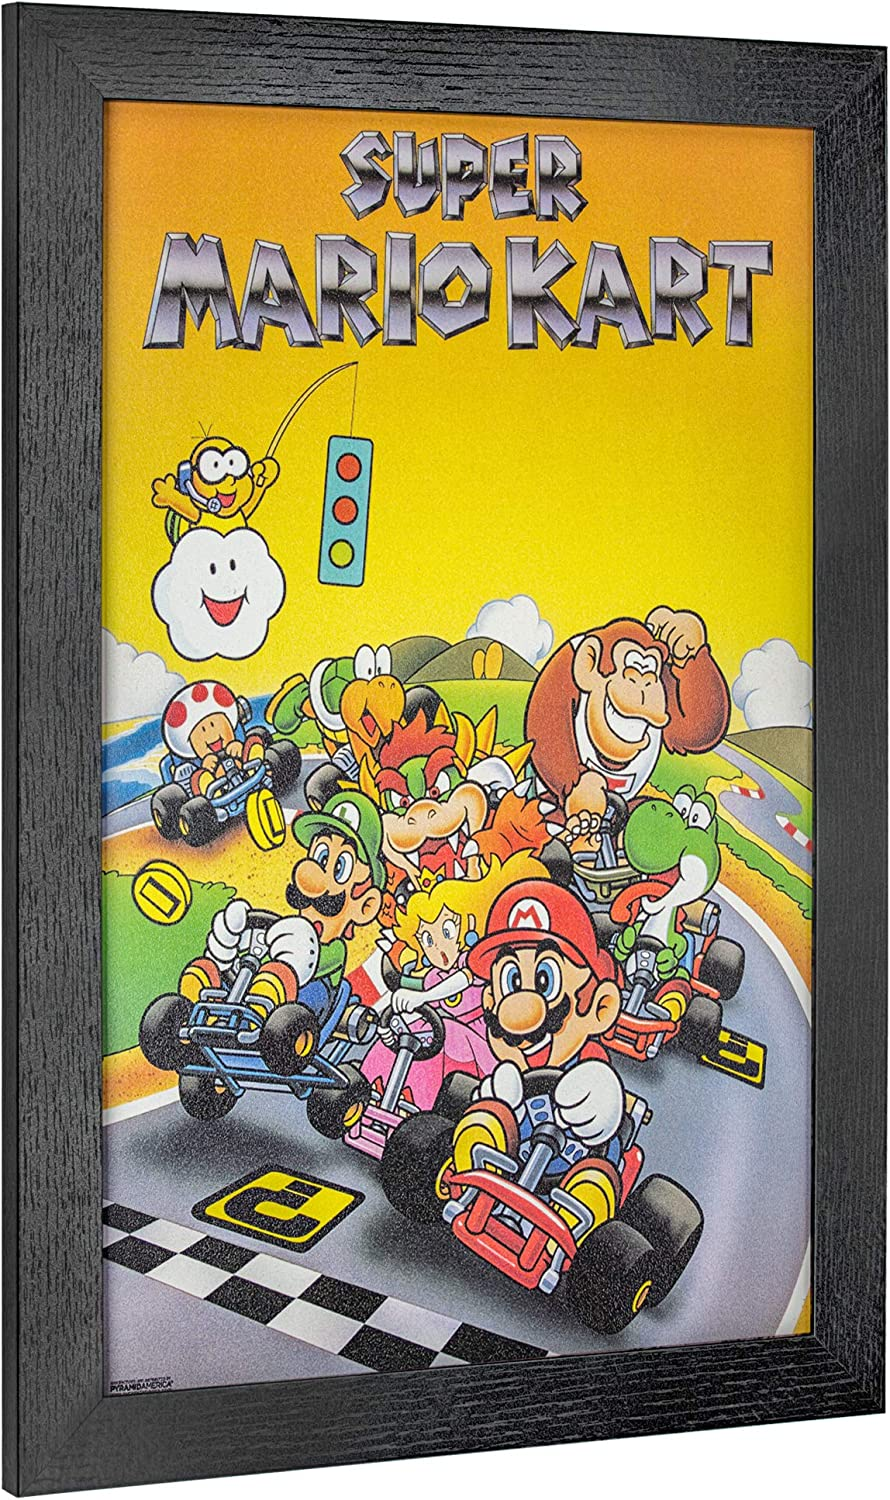 "Officially Licensed Nintendo Super Mario Kart Framed Poster Wall Art (19"" H x 13"" L)"